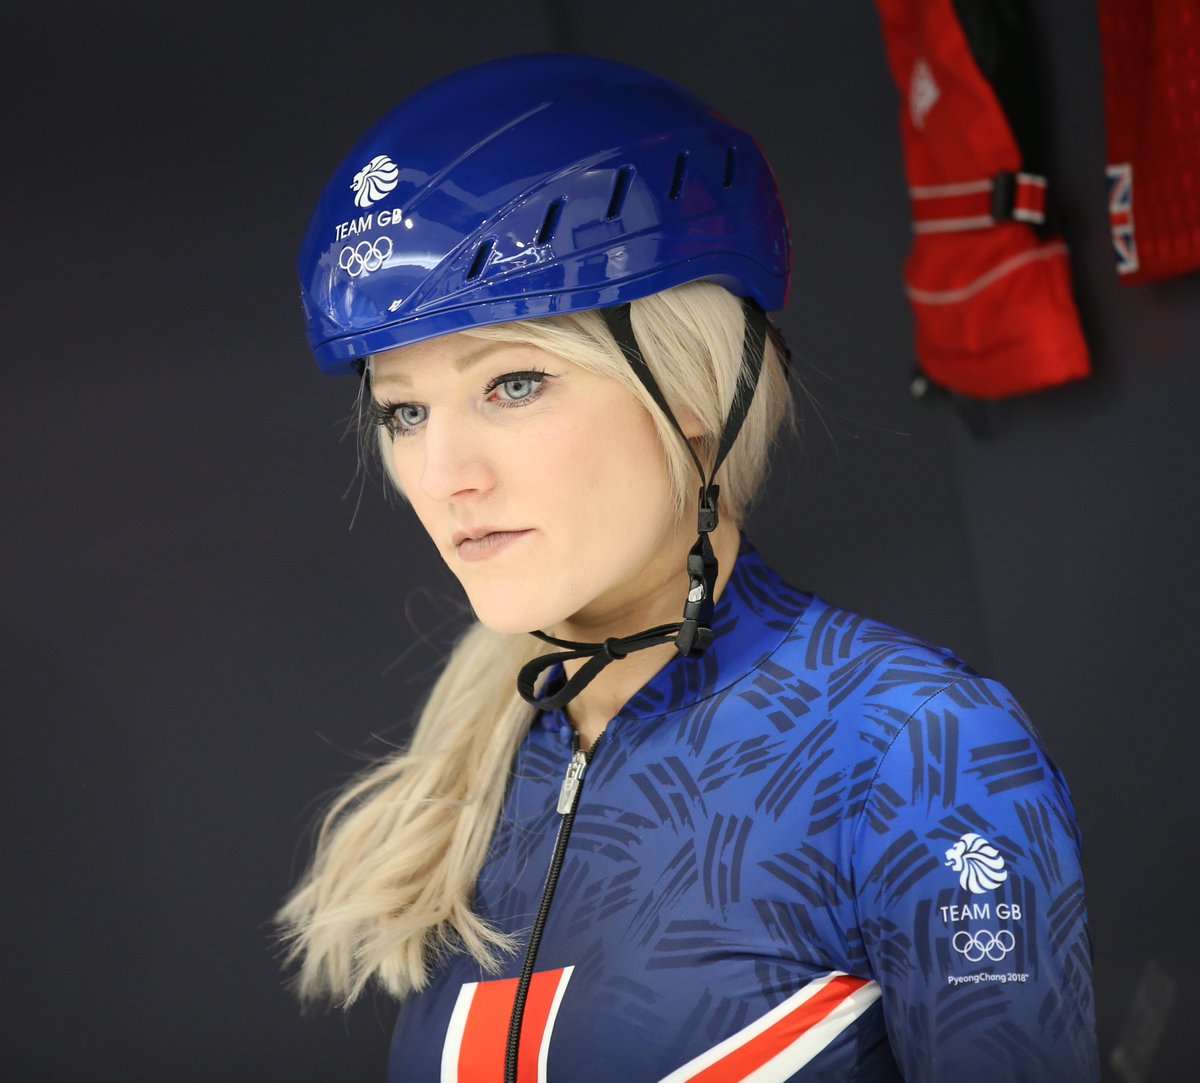 RT @OctagonUK: Happy Birthday to our @Elise_Christie! We hope you have a lovely day today  #icequeen #speedskating https://t.co/zoYqKHyCvi